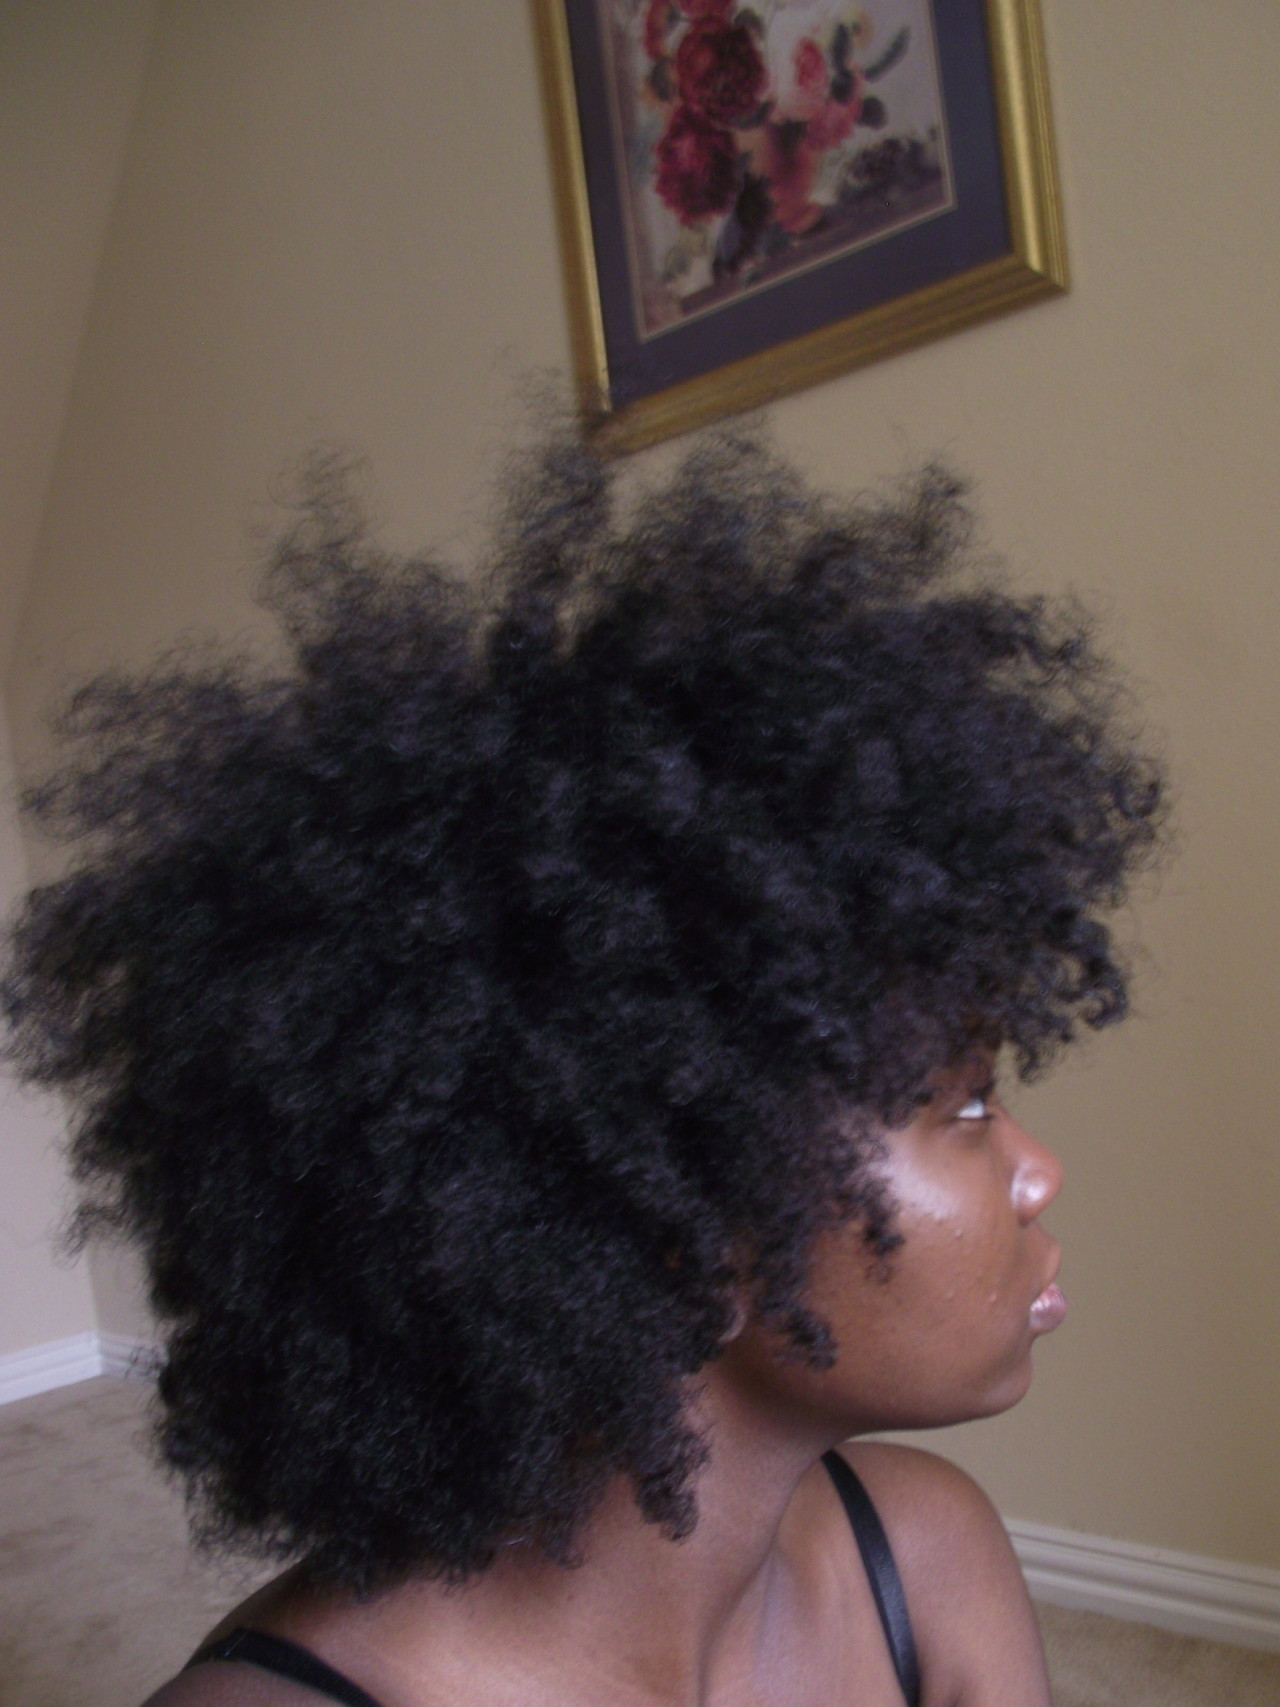 myblack-is-beautiful:  http://egyptique.tumblr.com/  my hair without weave and combed out   This Looks Like My Hair